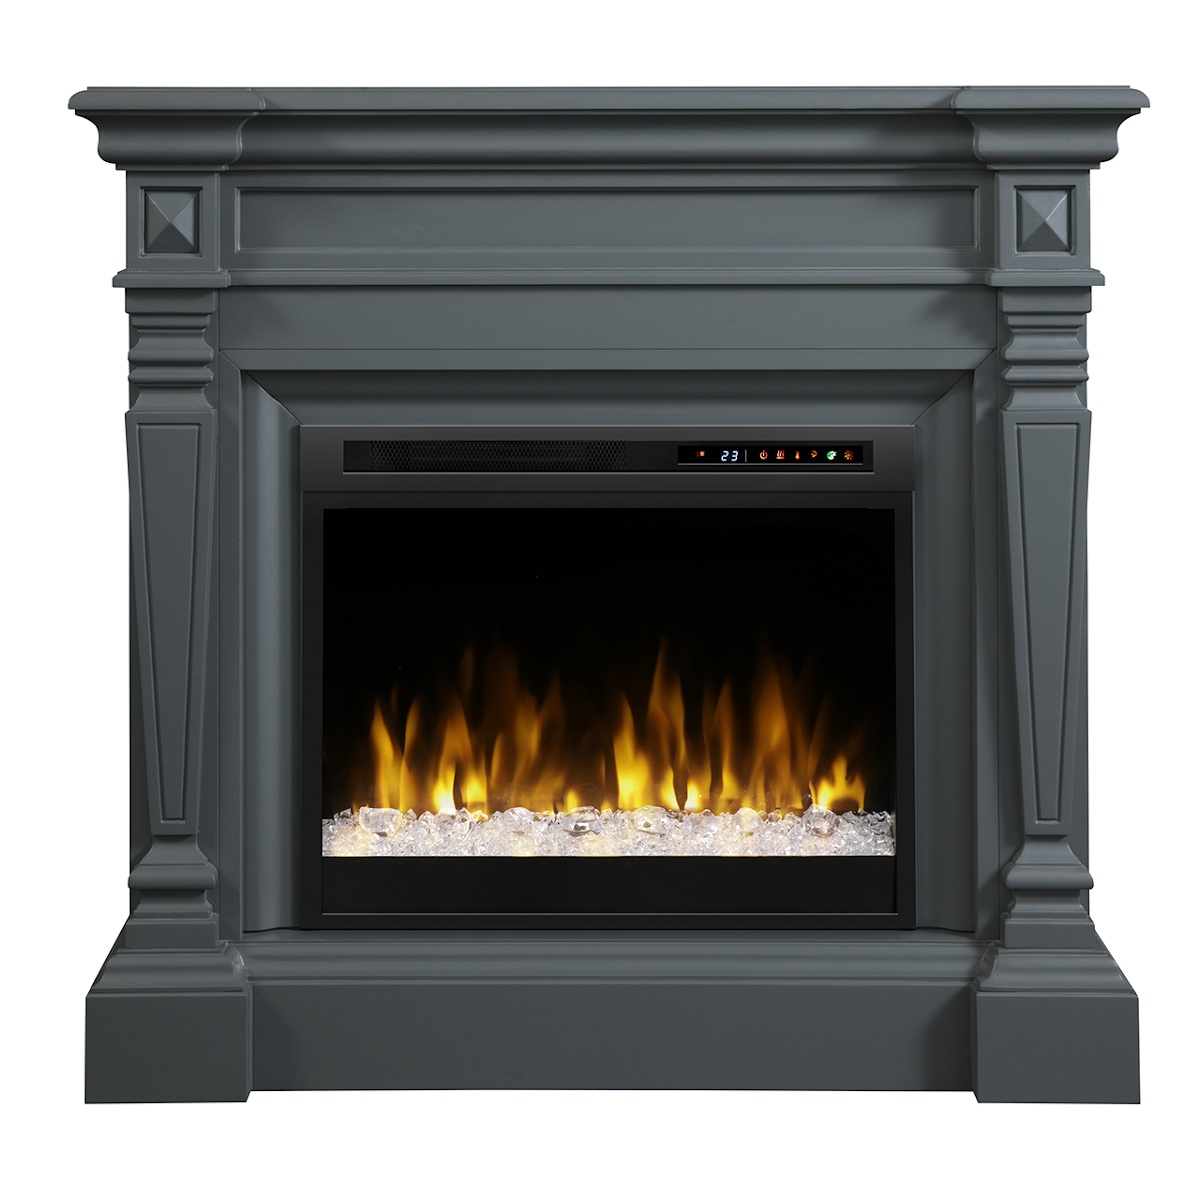 grey wall mantel with electric fireplace insert for transitional spaces